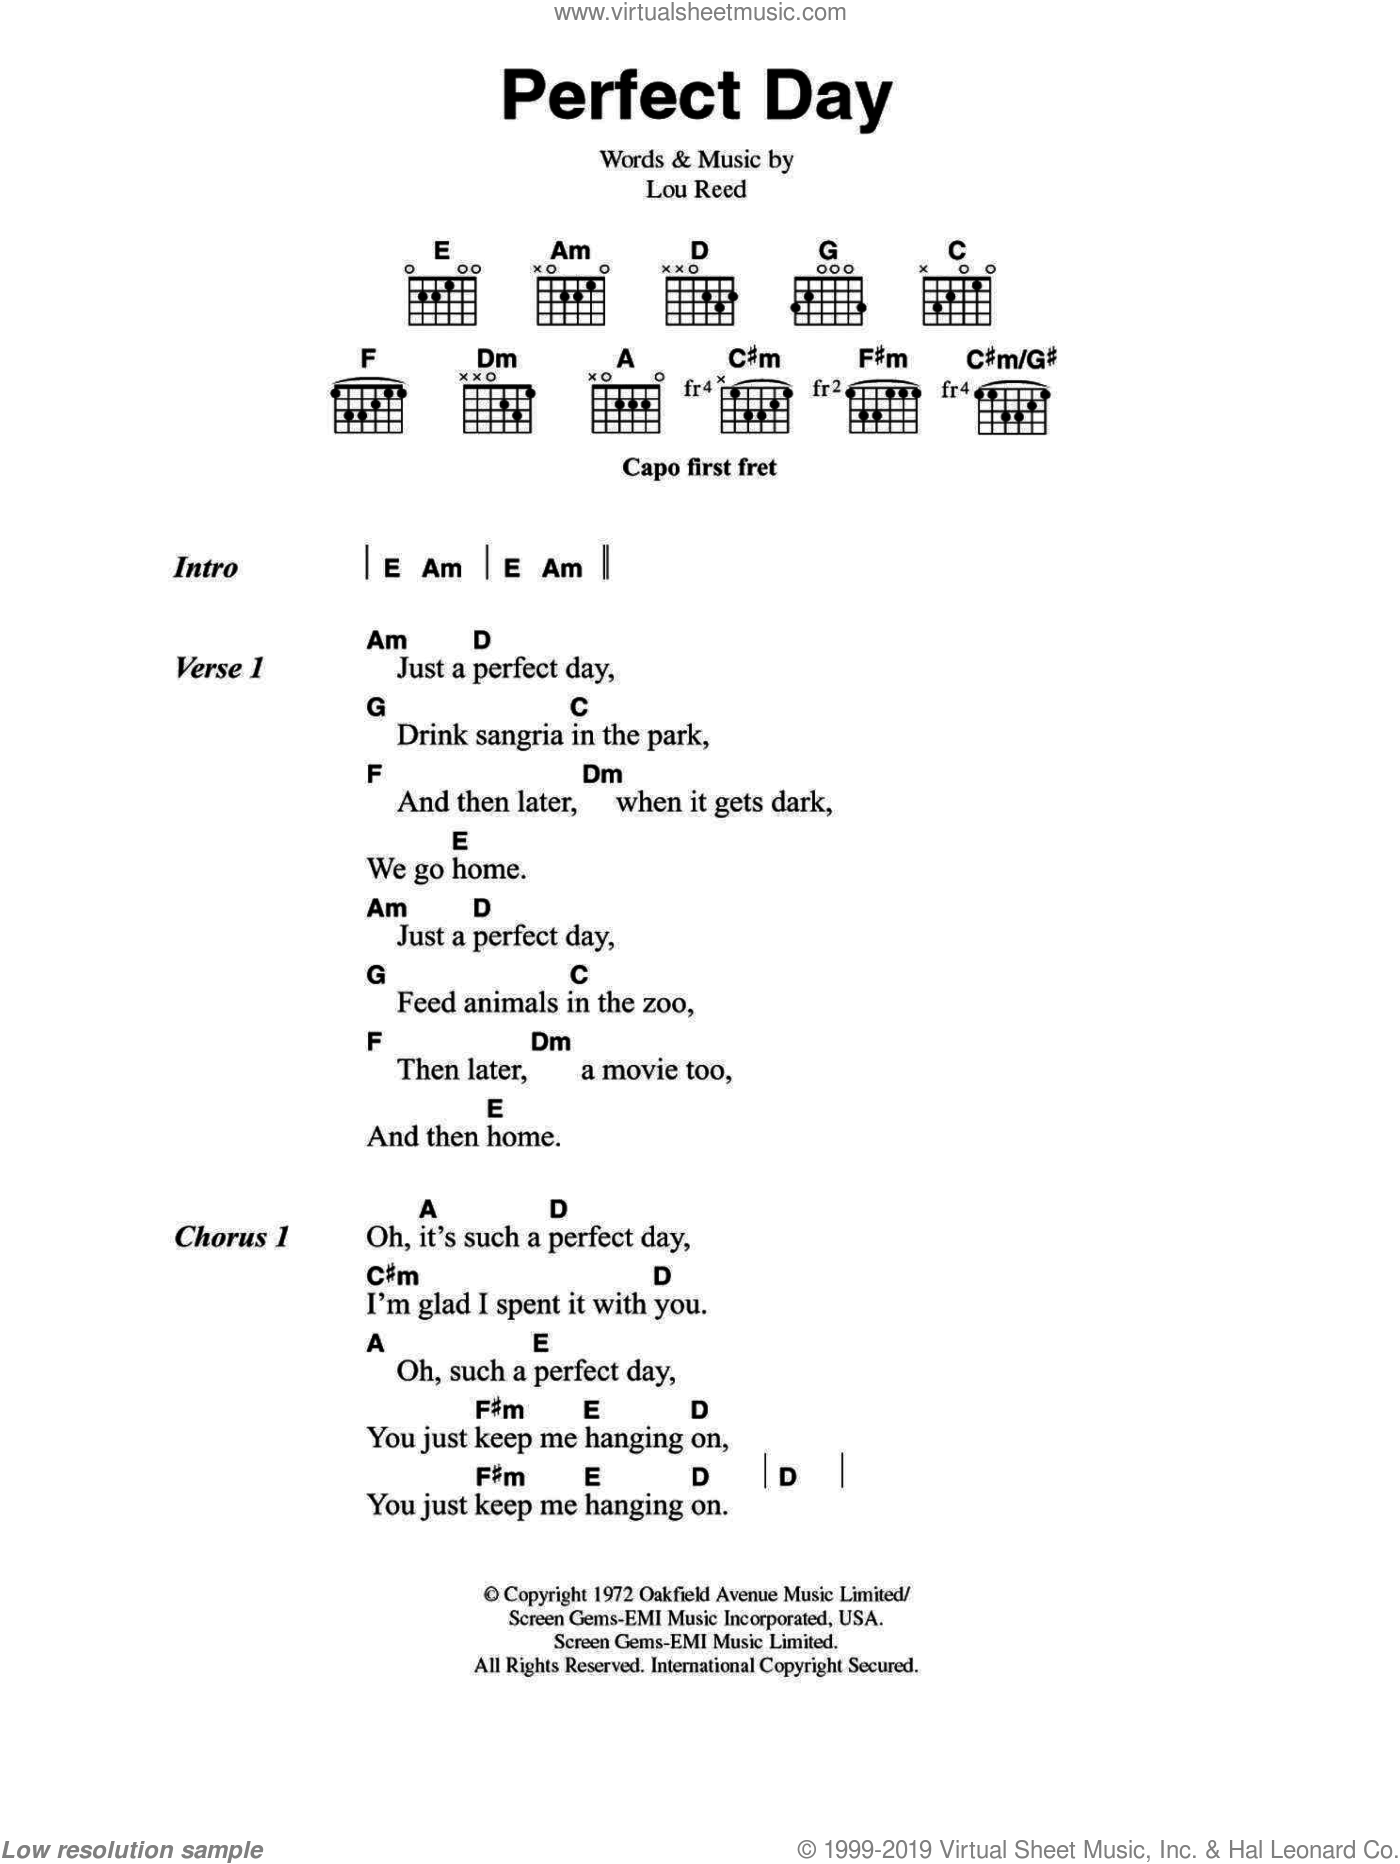 Perfect Day sheet music for guitar (chords) by Lou Reed, intermediate skill level